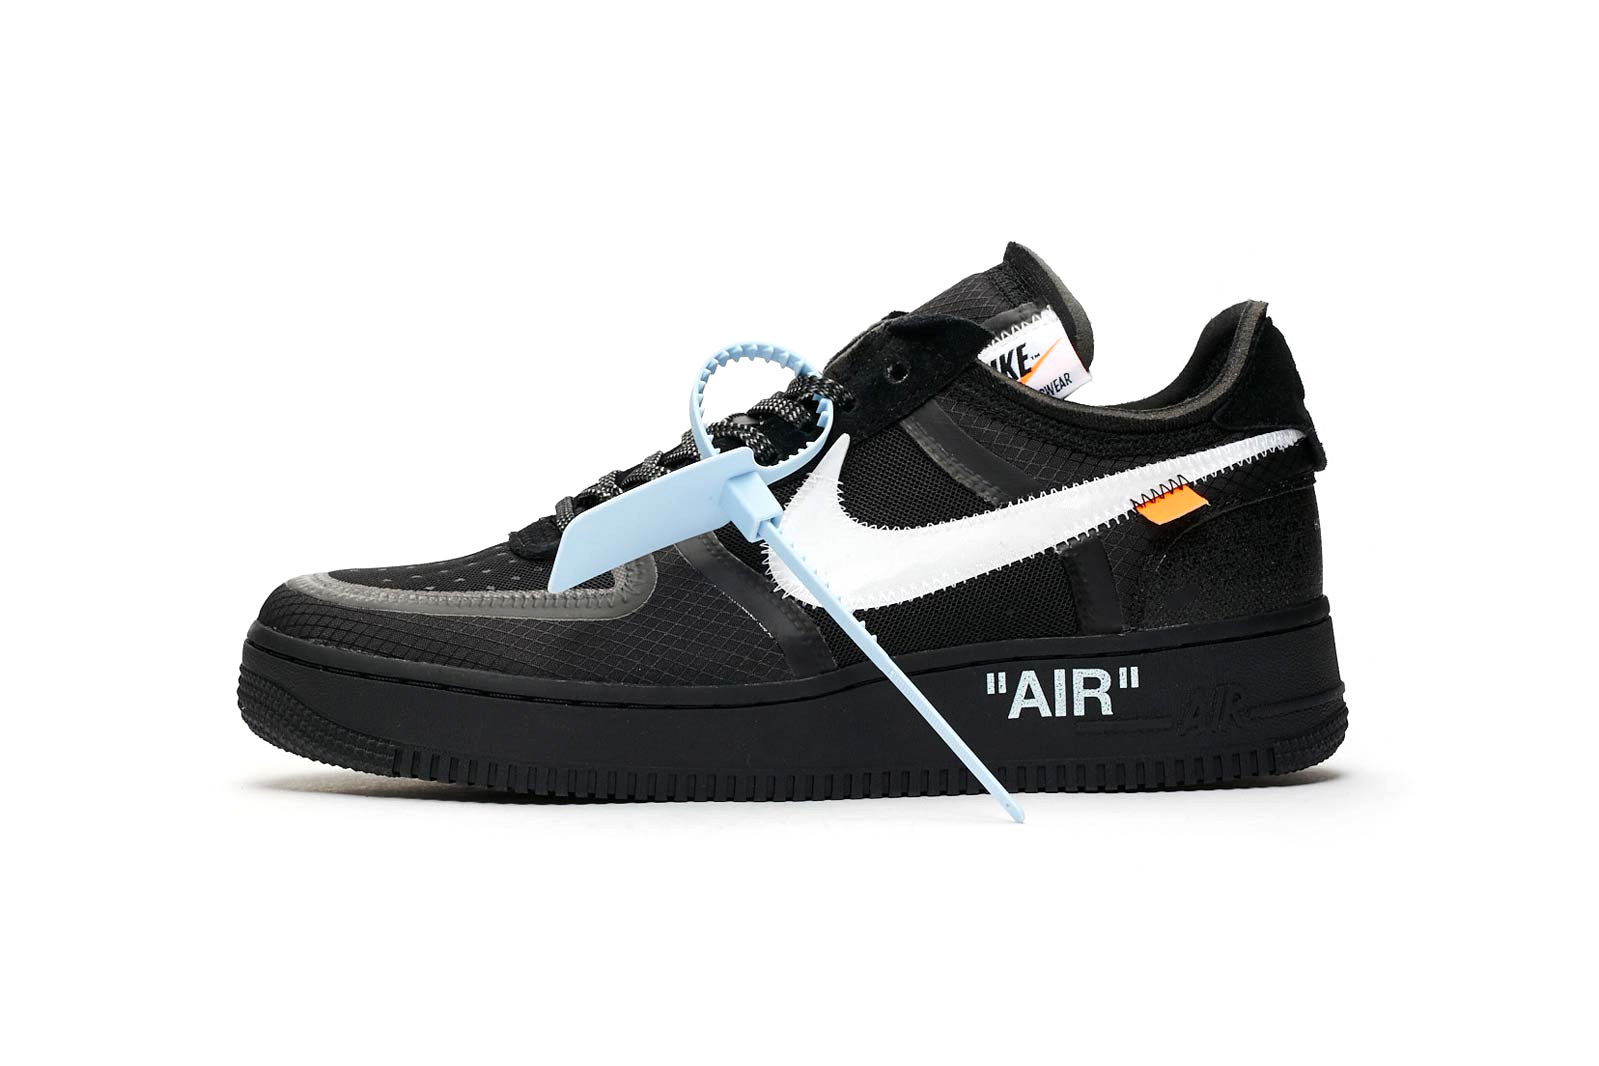 off white x nike air force 1